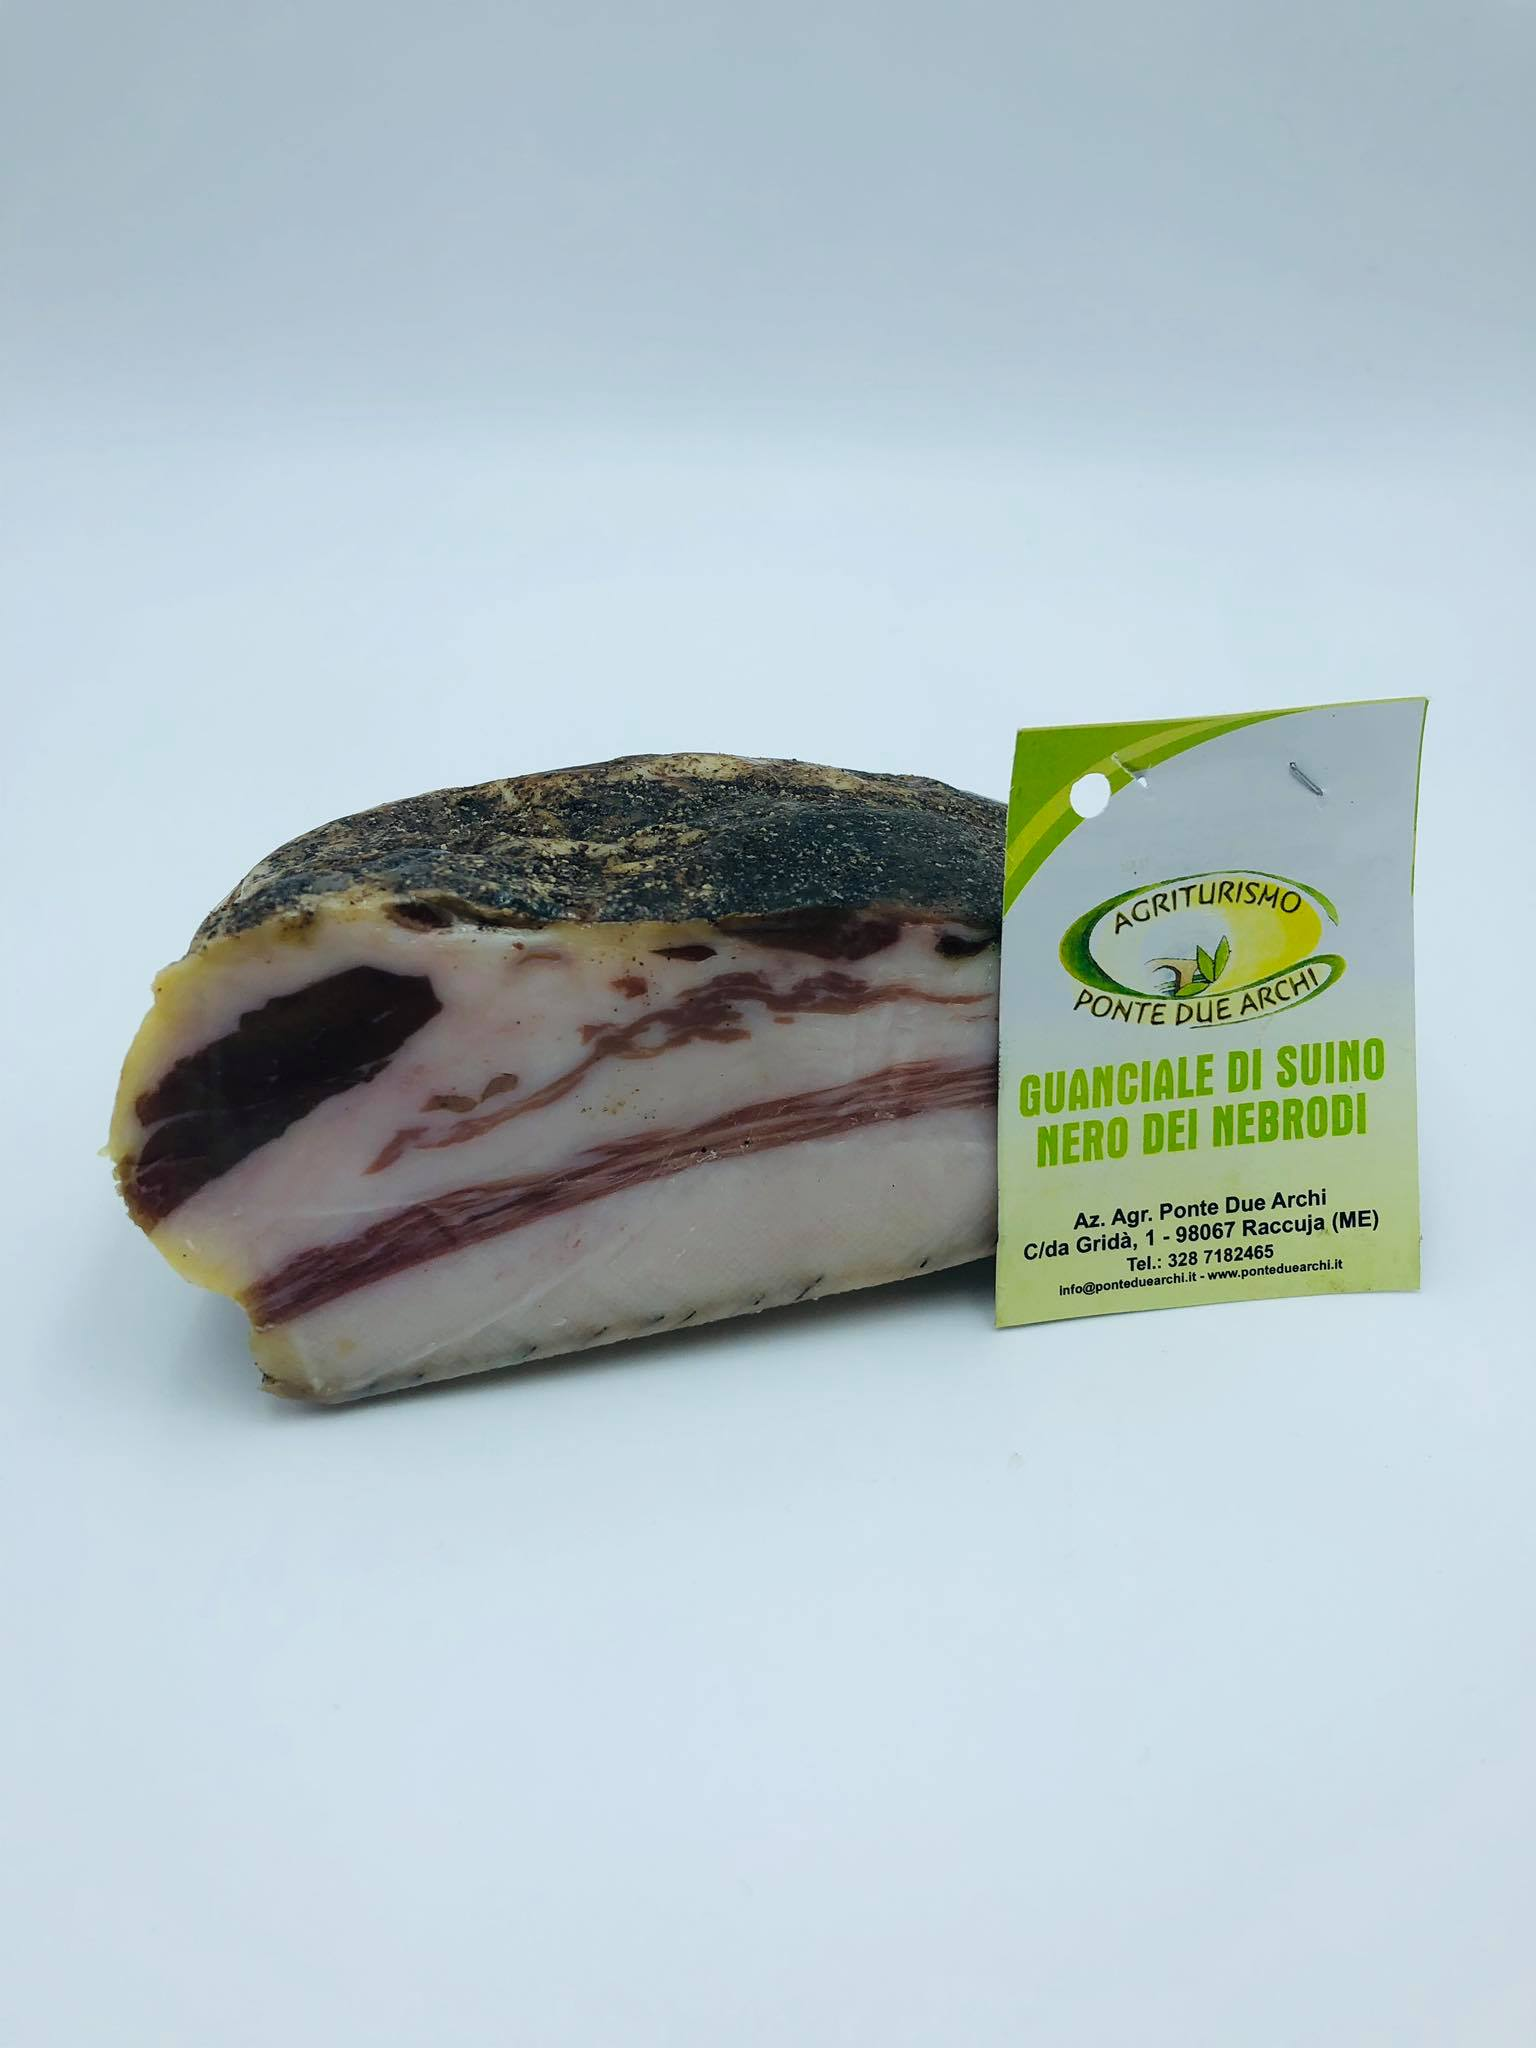 Nebrodi Black Pork Cheek (Guanciale di Suino Nero dei Nebrodi) - Ponte due Archi